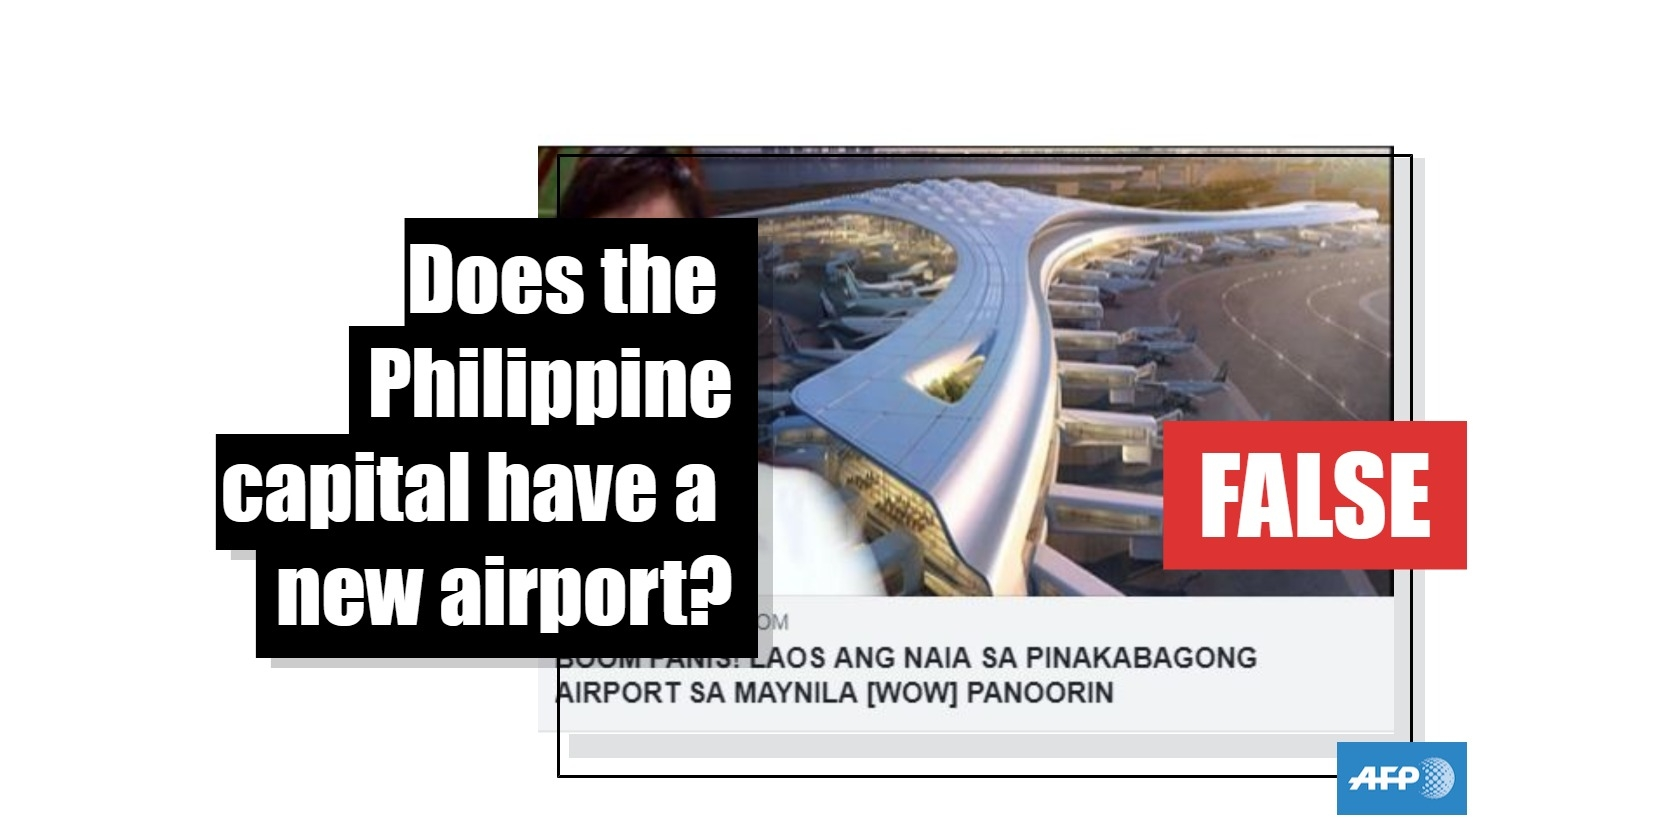 No, the Philippine capital does not have a new airport